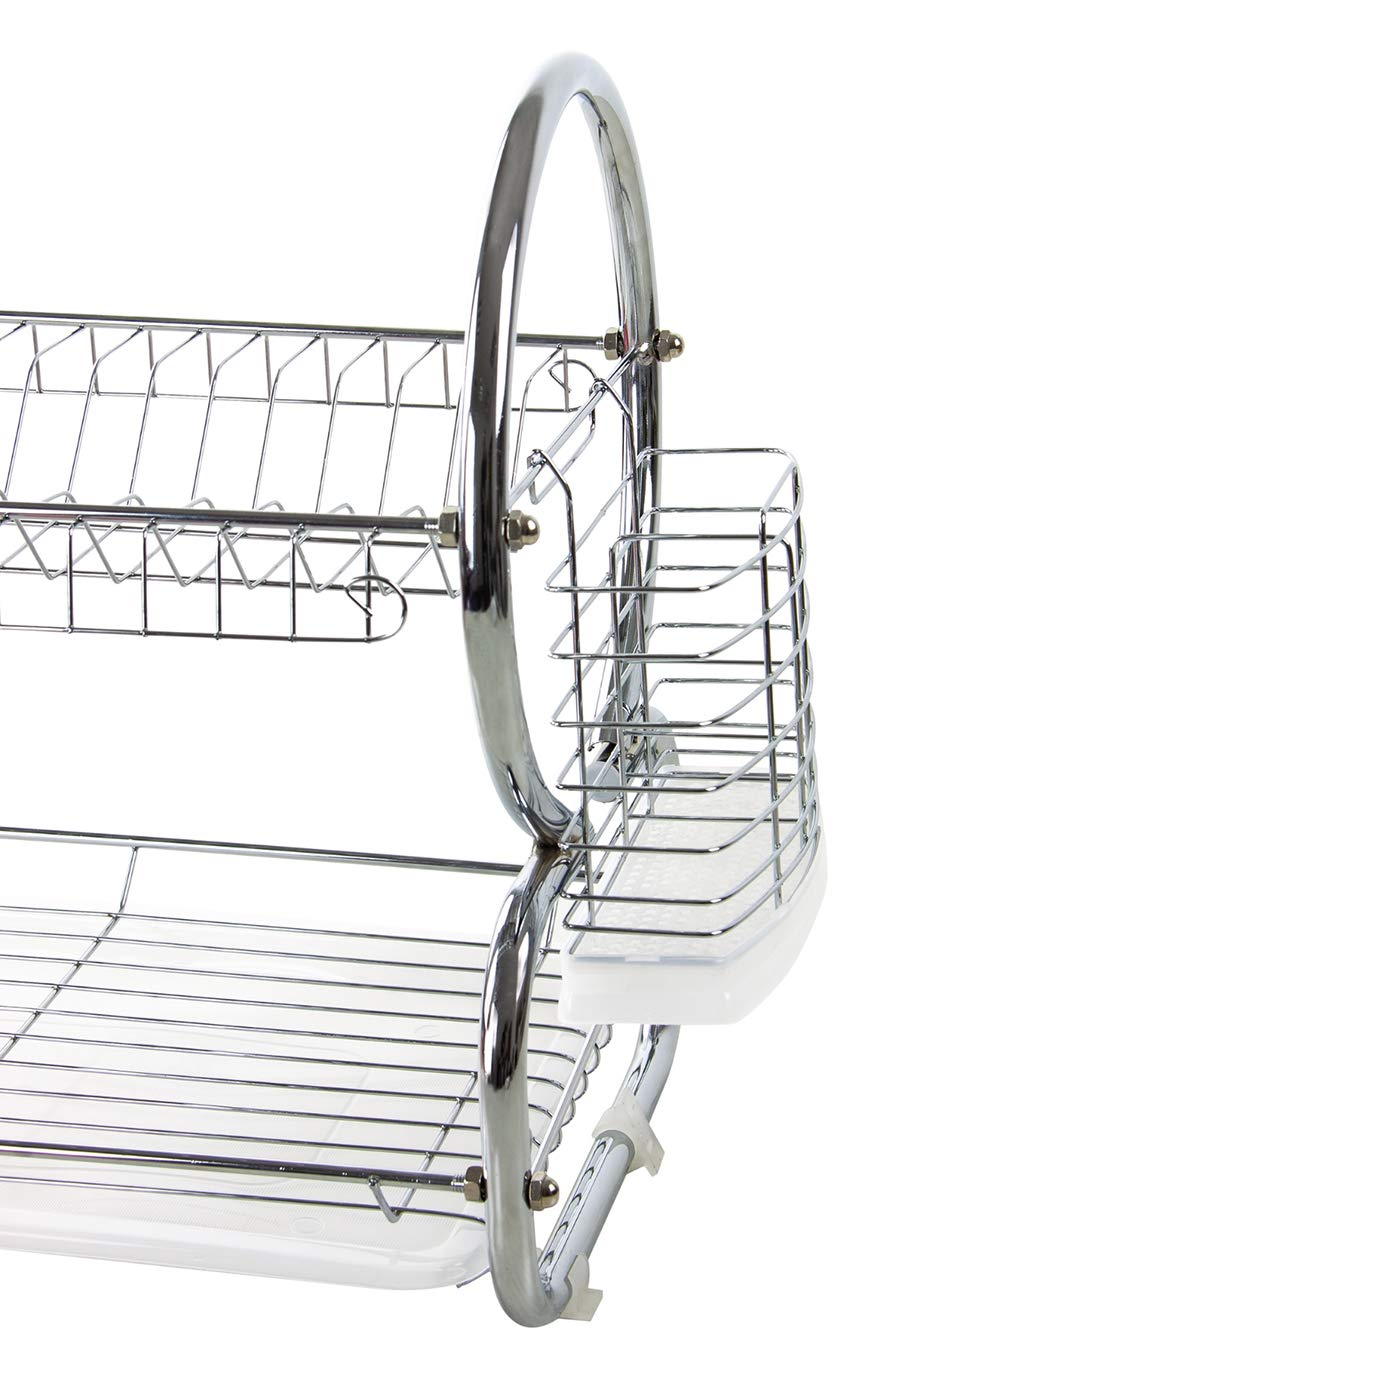 REGULAR SIZE HIGH QUALITY CHROME PLATED FINISH DISH DRAINER ELITE PRO 9OO Series